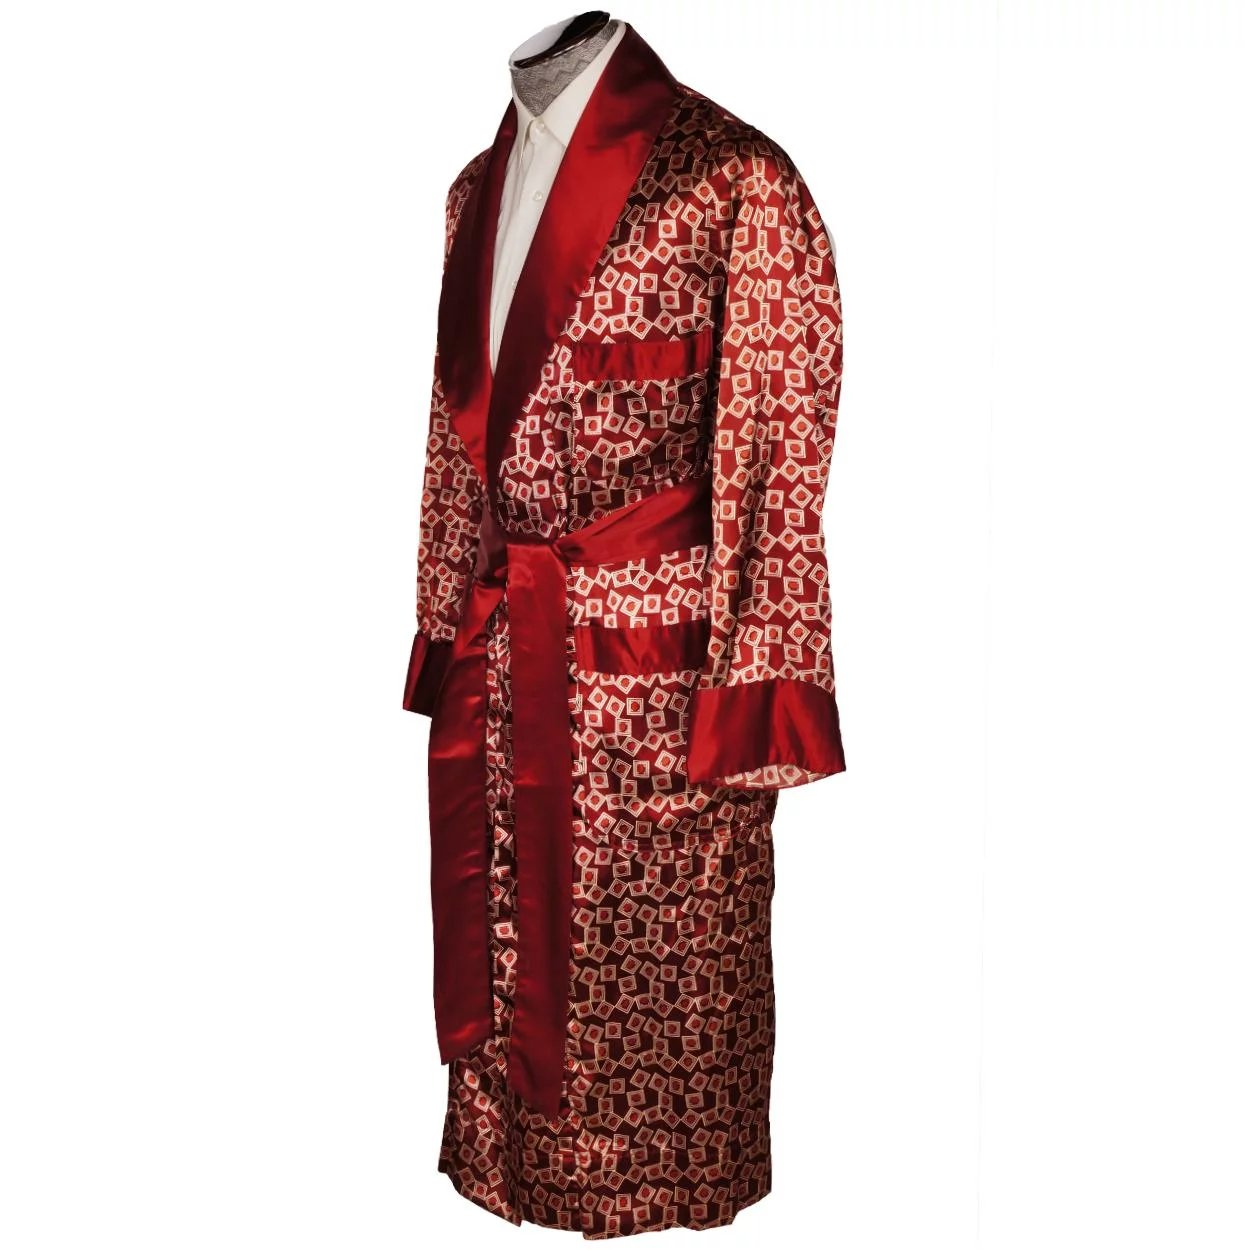 Men S Dressing Gowns: Vintage 1940s Mens Dressing Gown Smoking Lounging Robe By